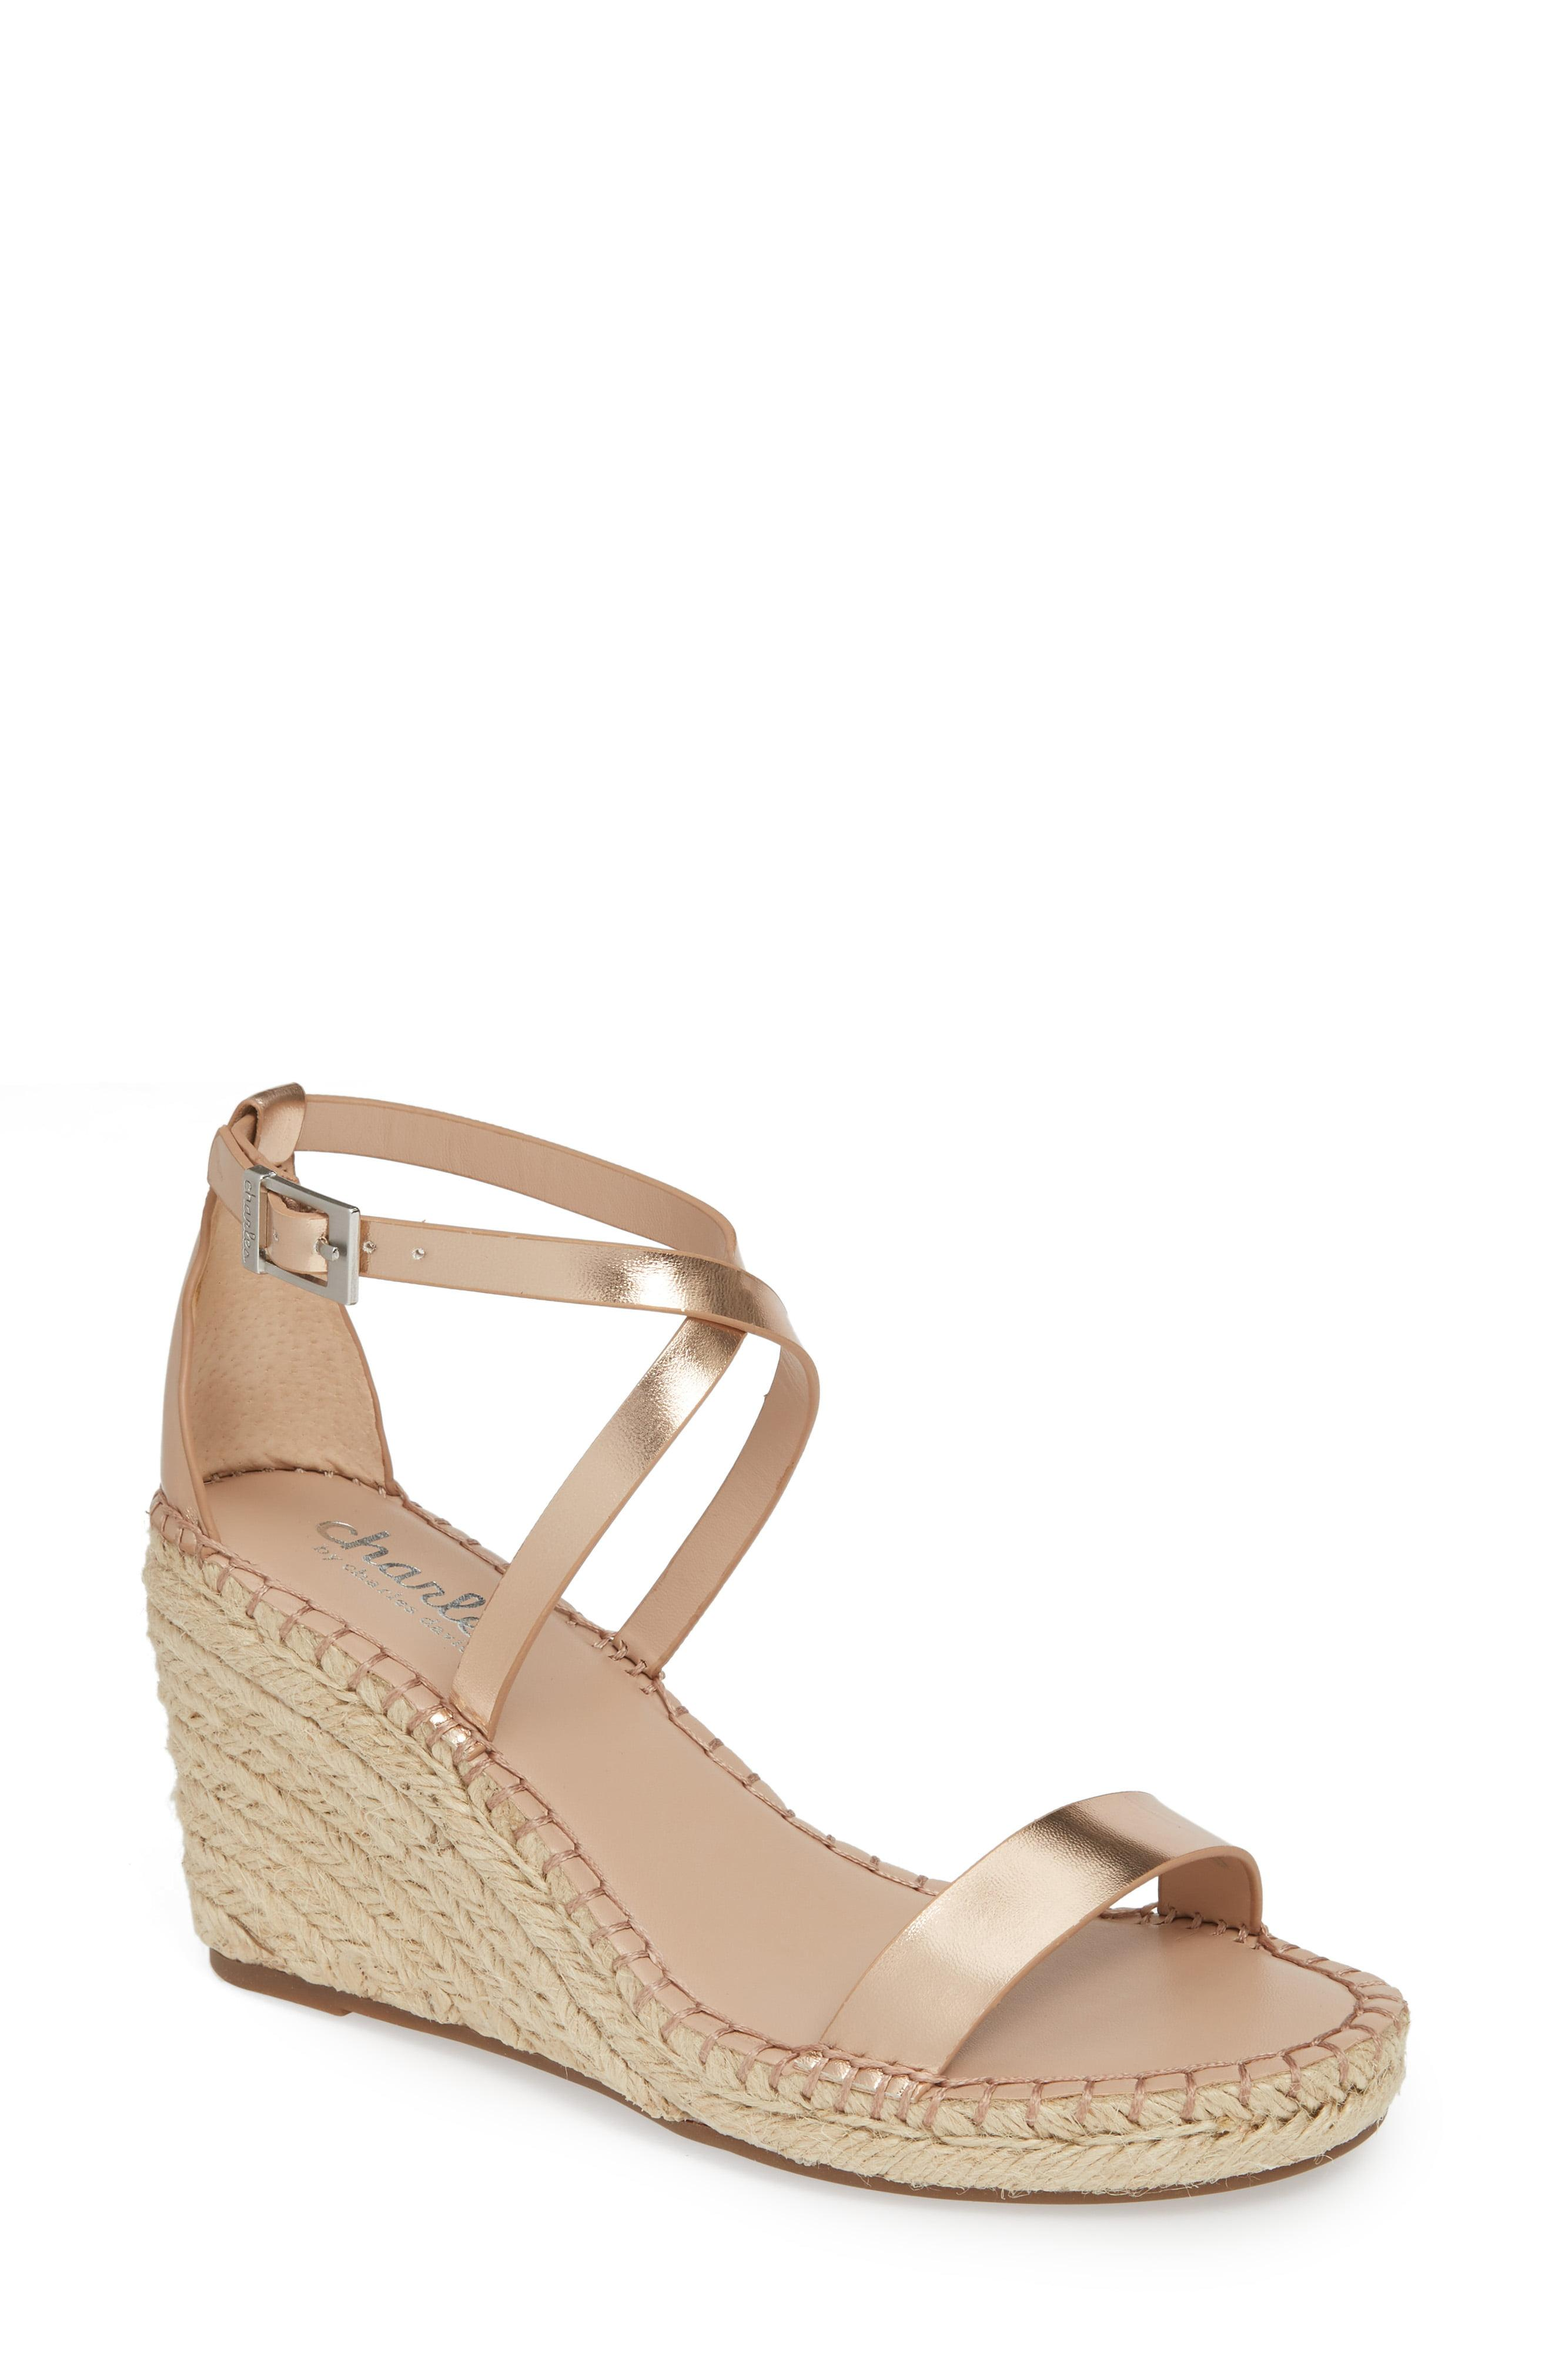 7e7703a34ce7 Lyst - Charles David Nola Espadrille Wedge Sandal in Metallic